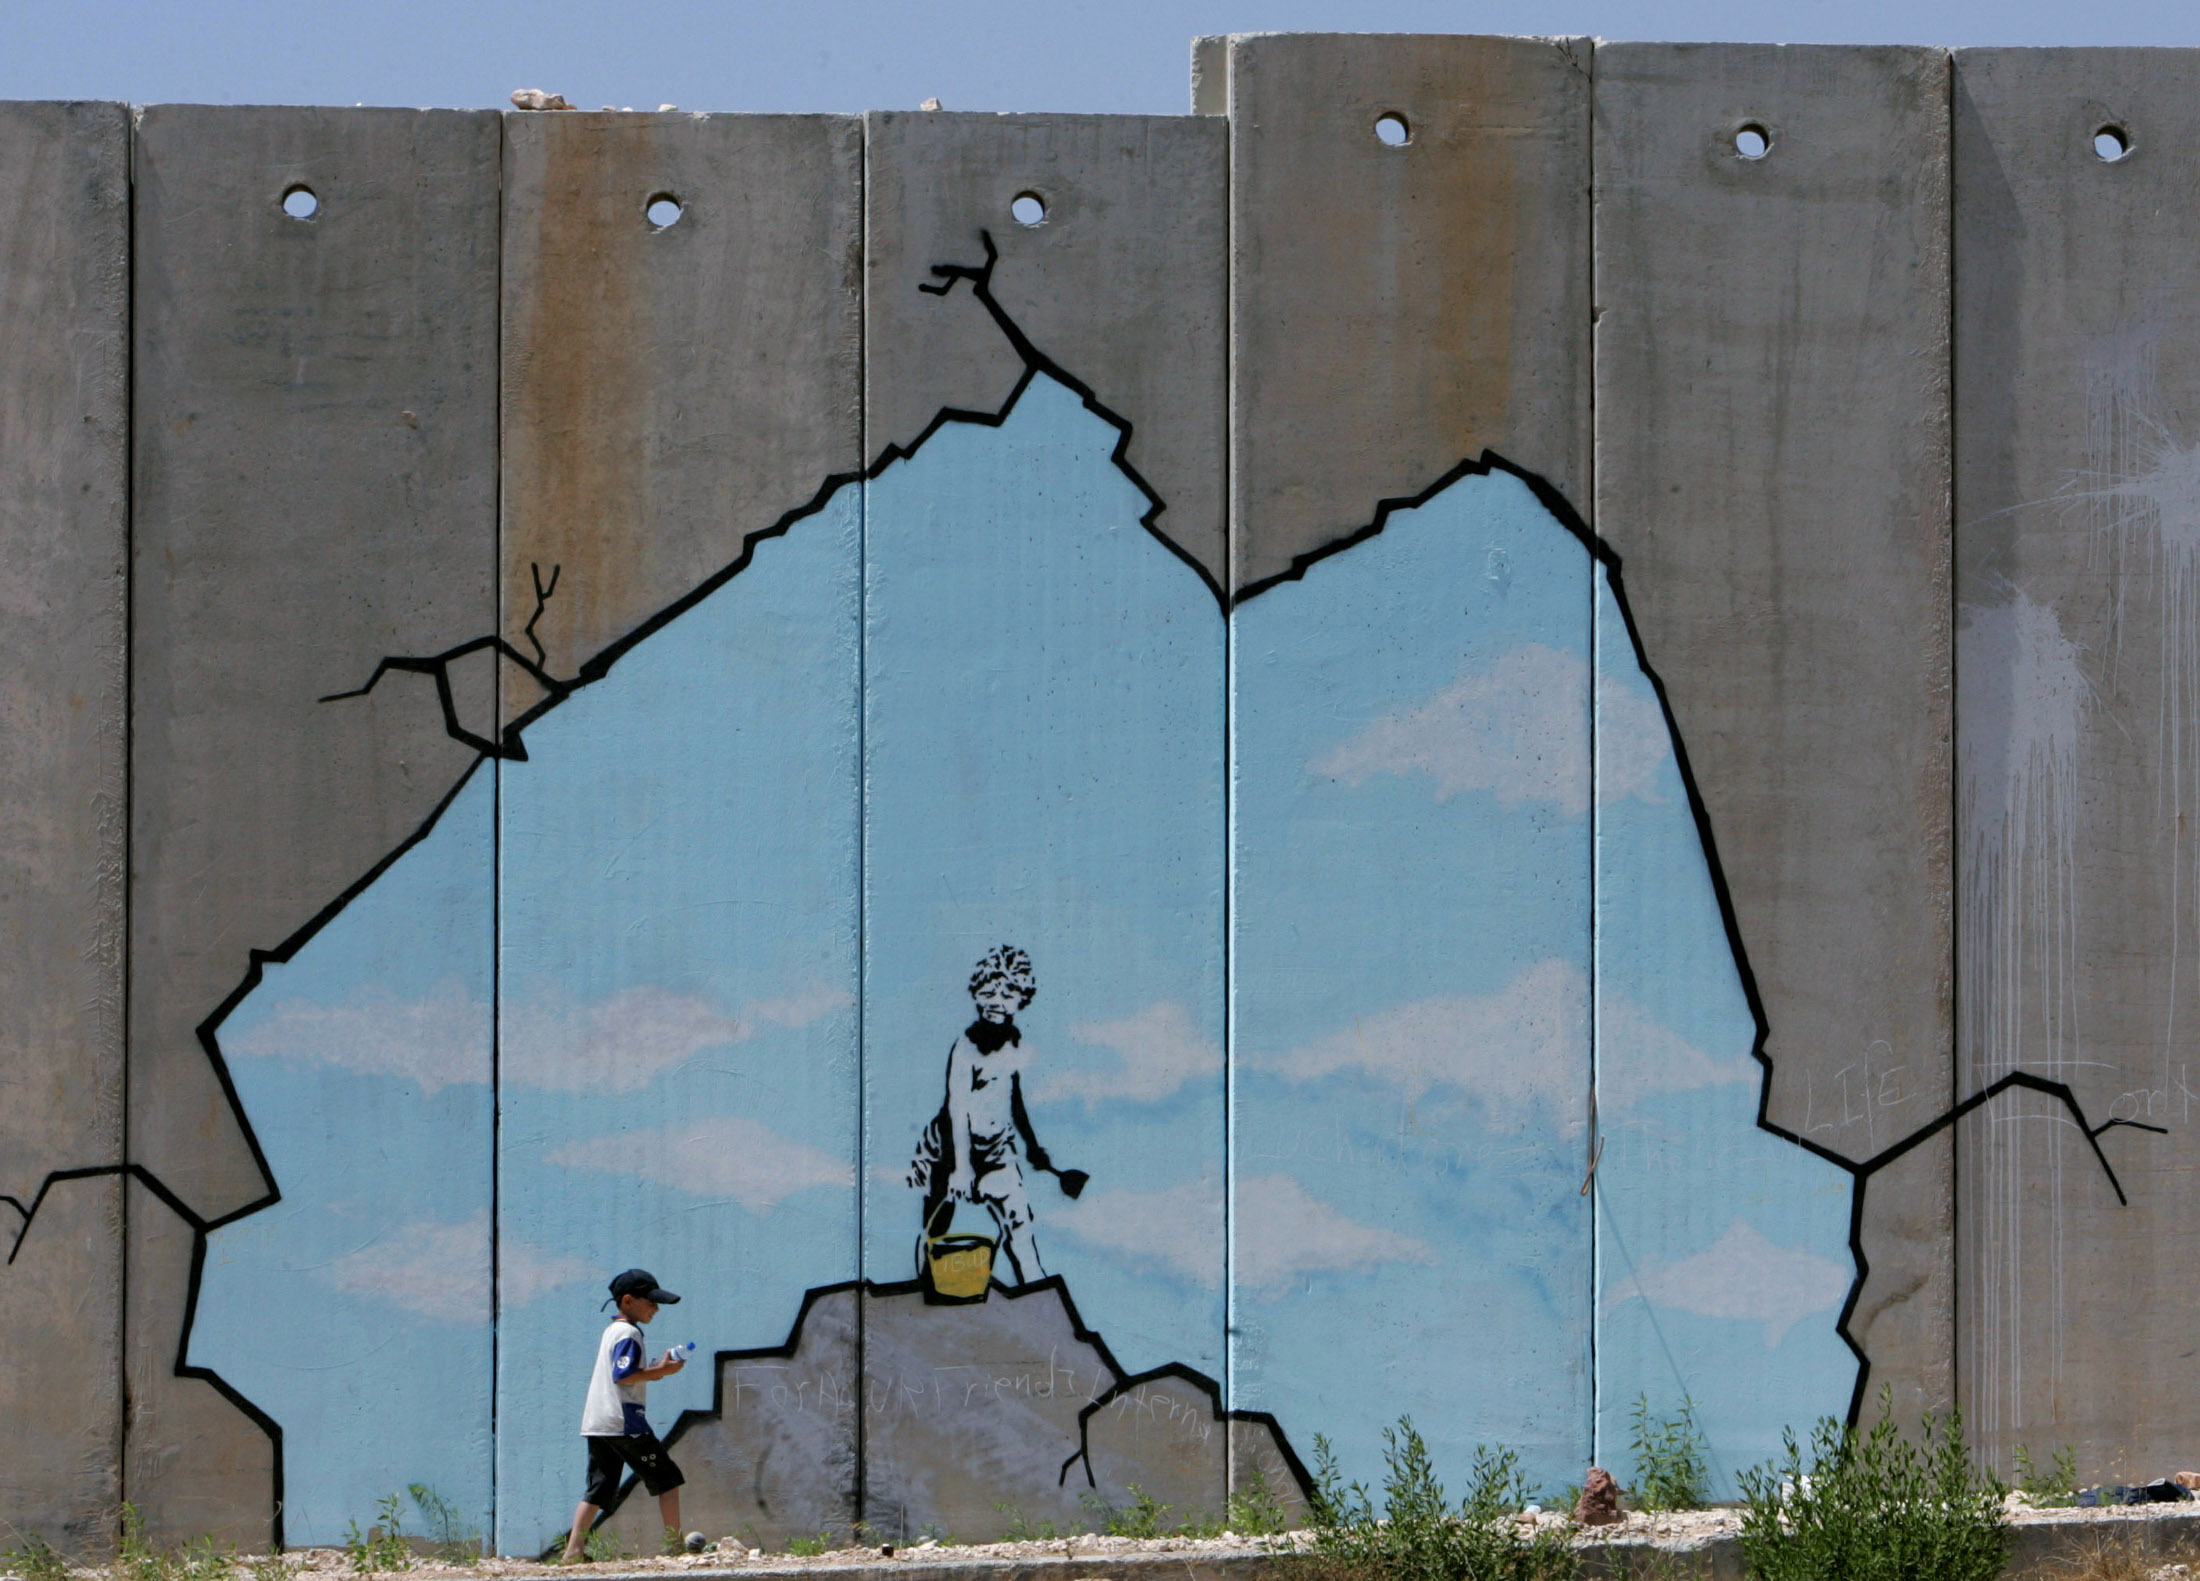 A Palestinian boy walks past a drawing by British graffiti artist Banksy, along part of the controversial Israeli barrier near the Kalandia checkpoint in the West Bank August 10, 2005. Photo by Ammar Awad/REUTERS.